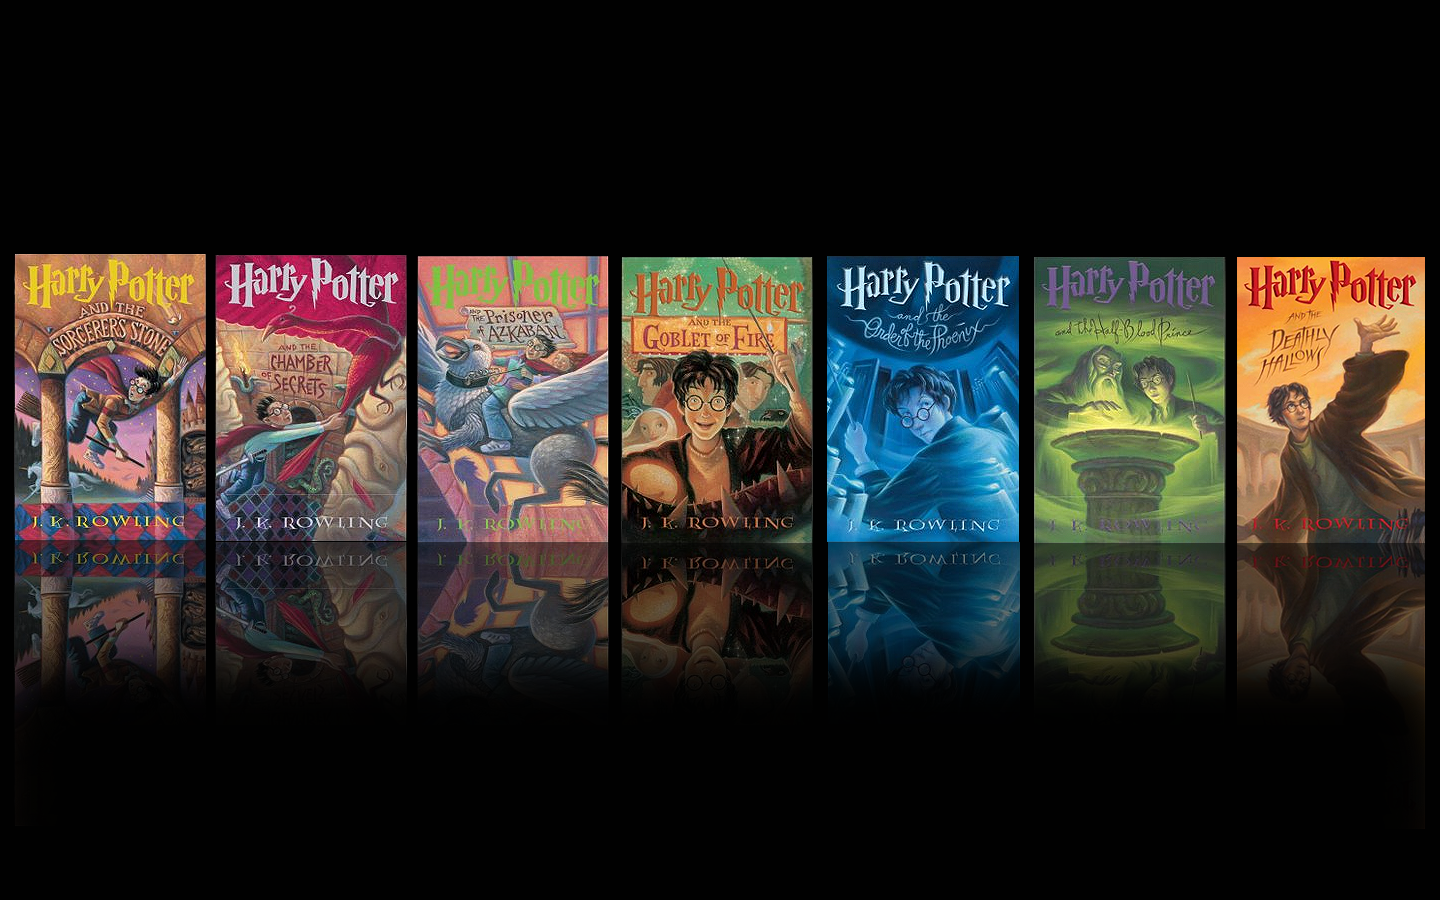 harry potter books and the chamber of secrets HD Wallpaper 1440x900